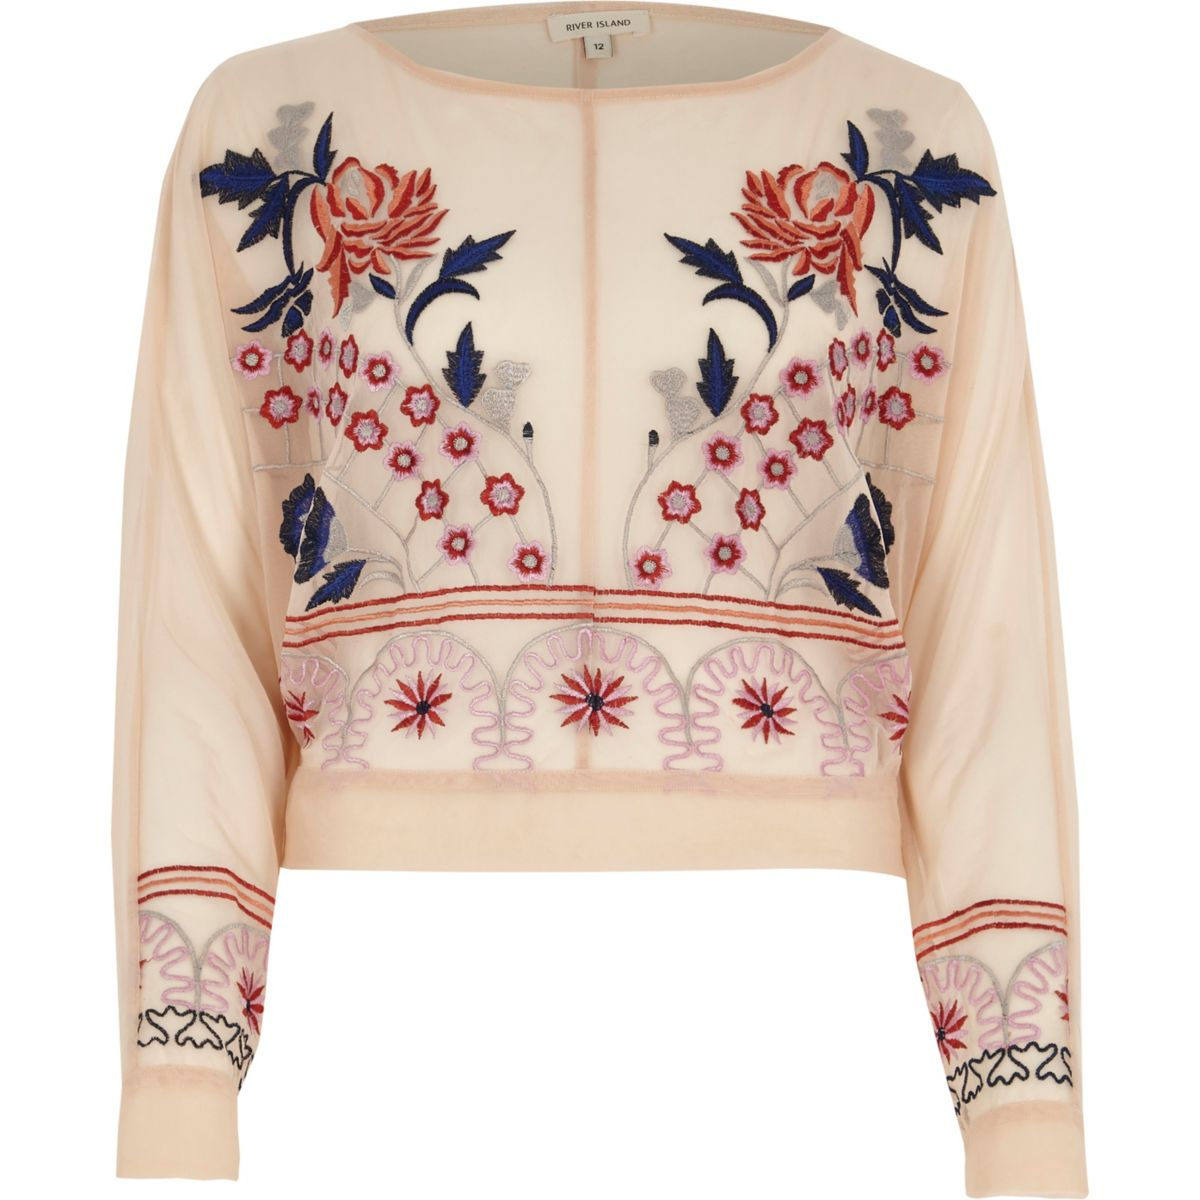 Light pink floral embroidered batwing top